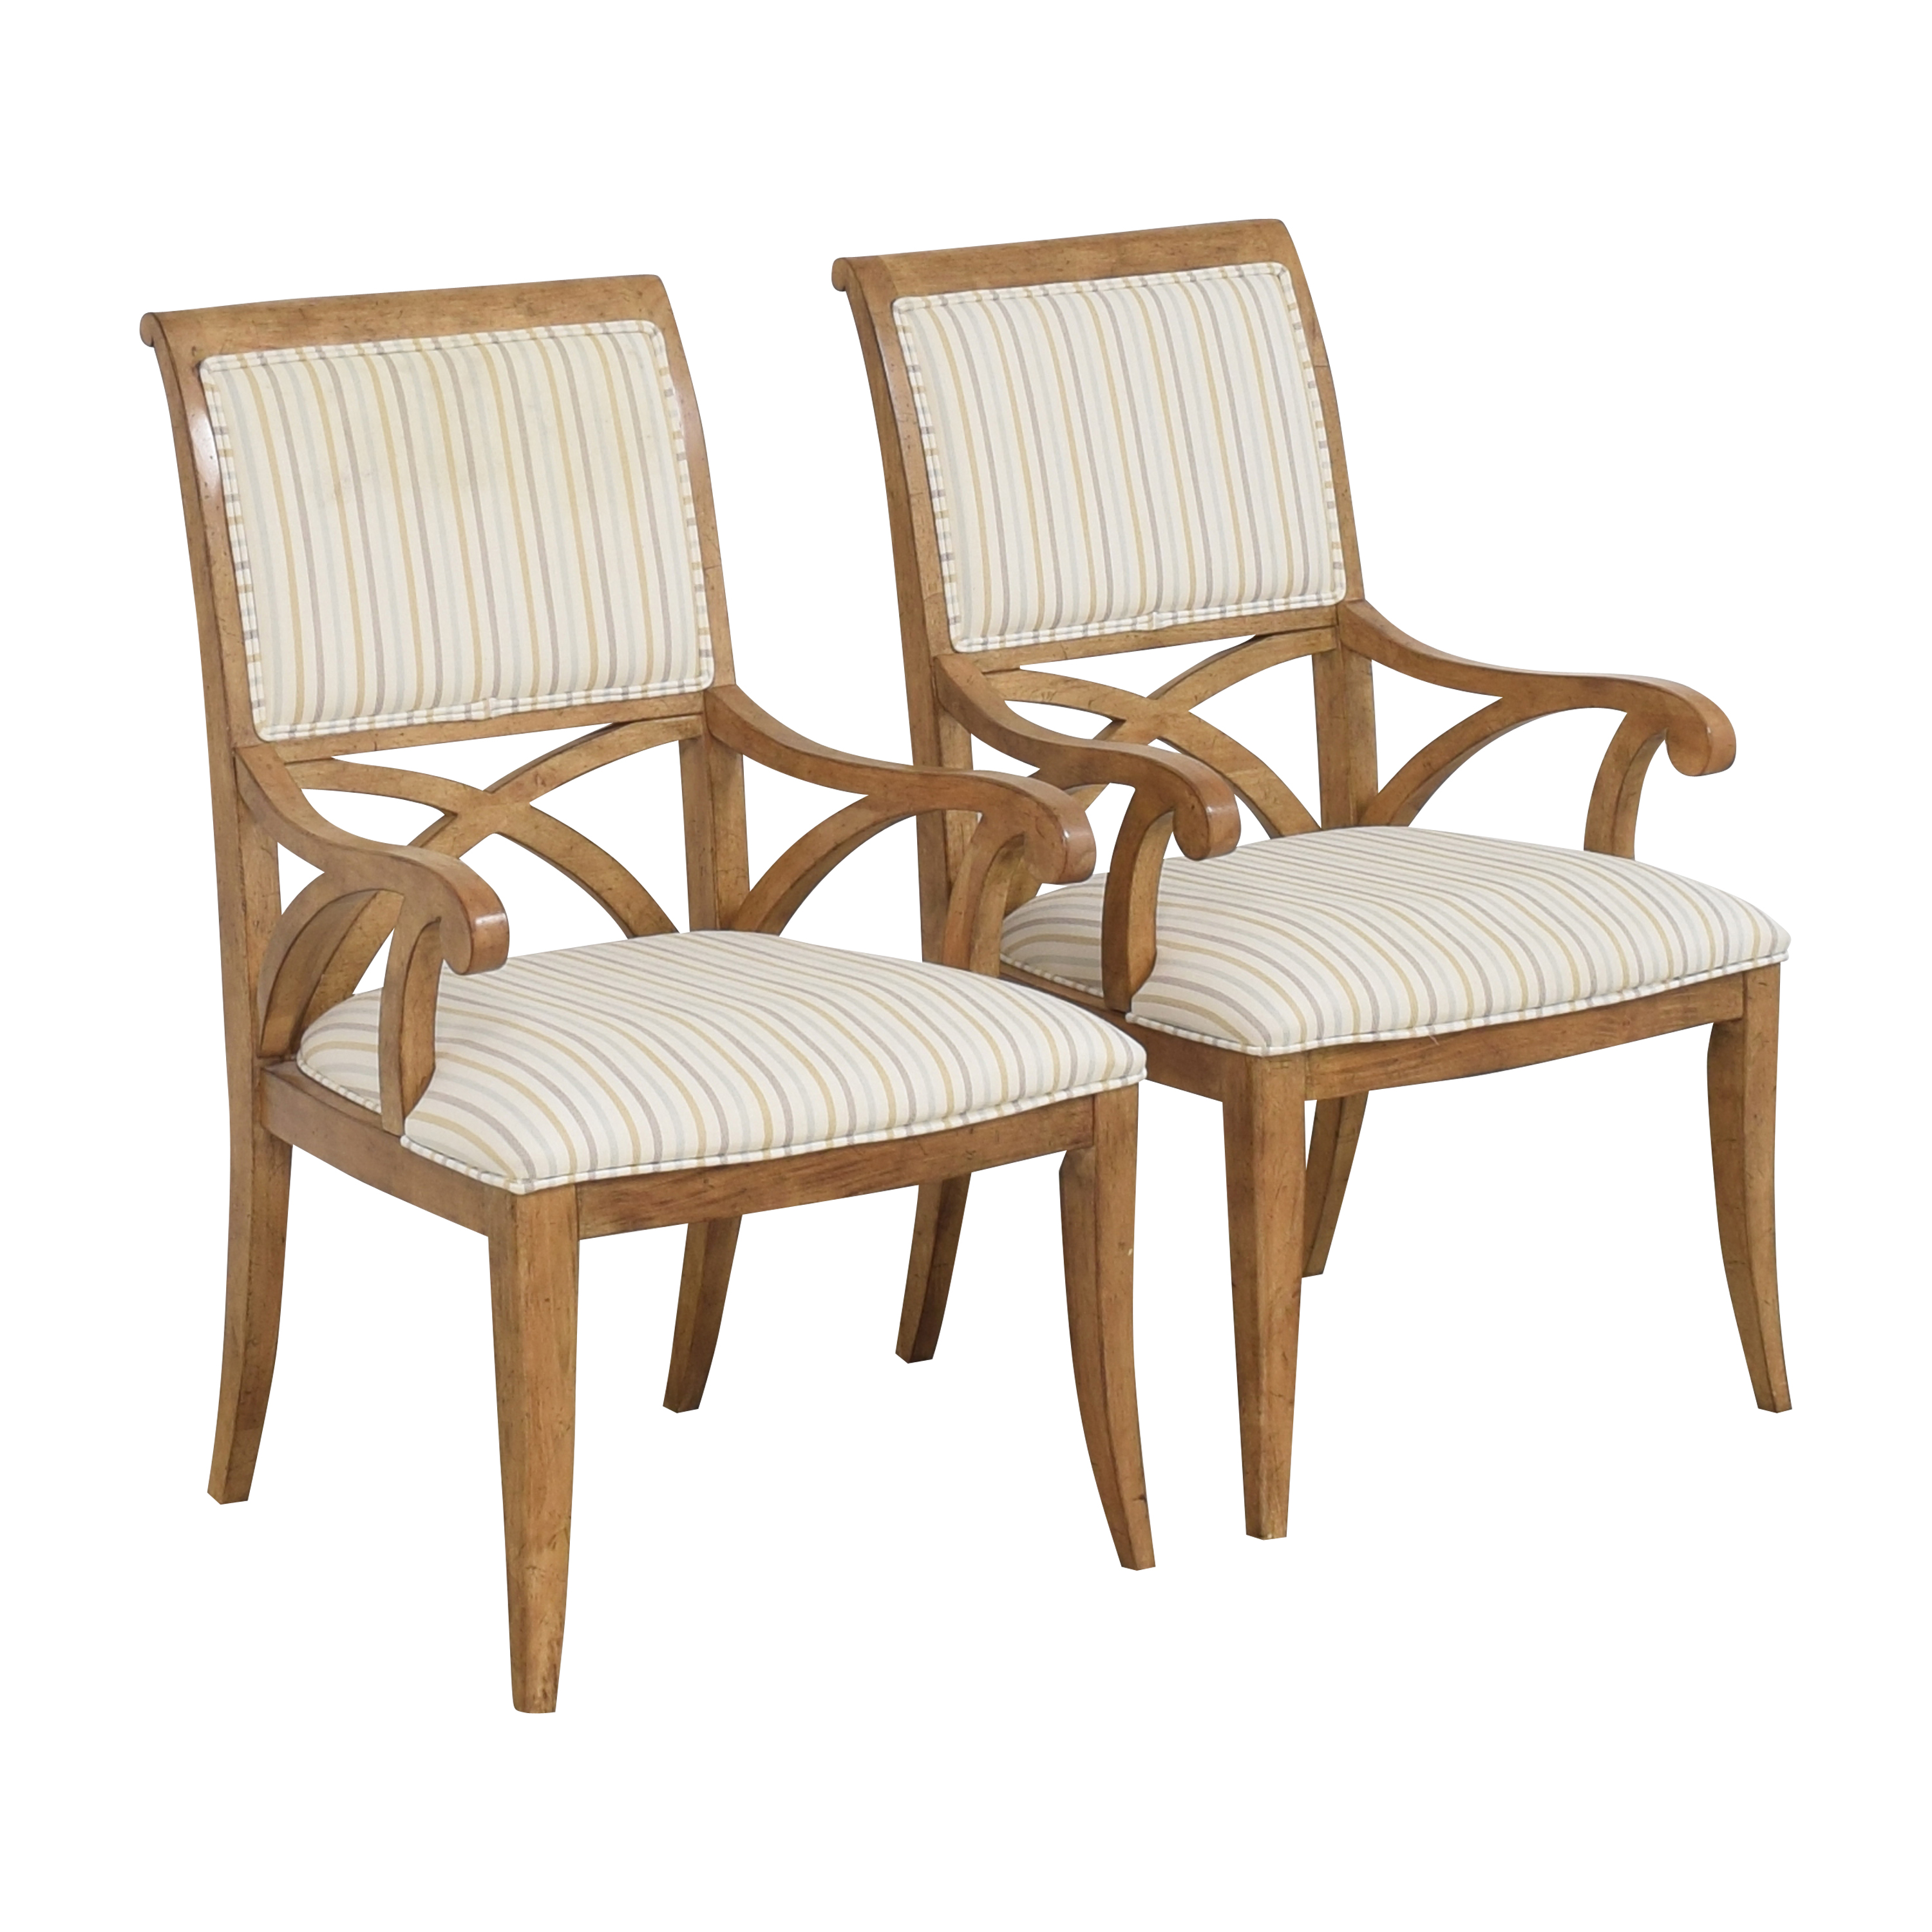 Thomasville Thomasville Upholstered Dining Chairs second hand